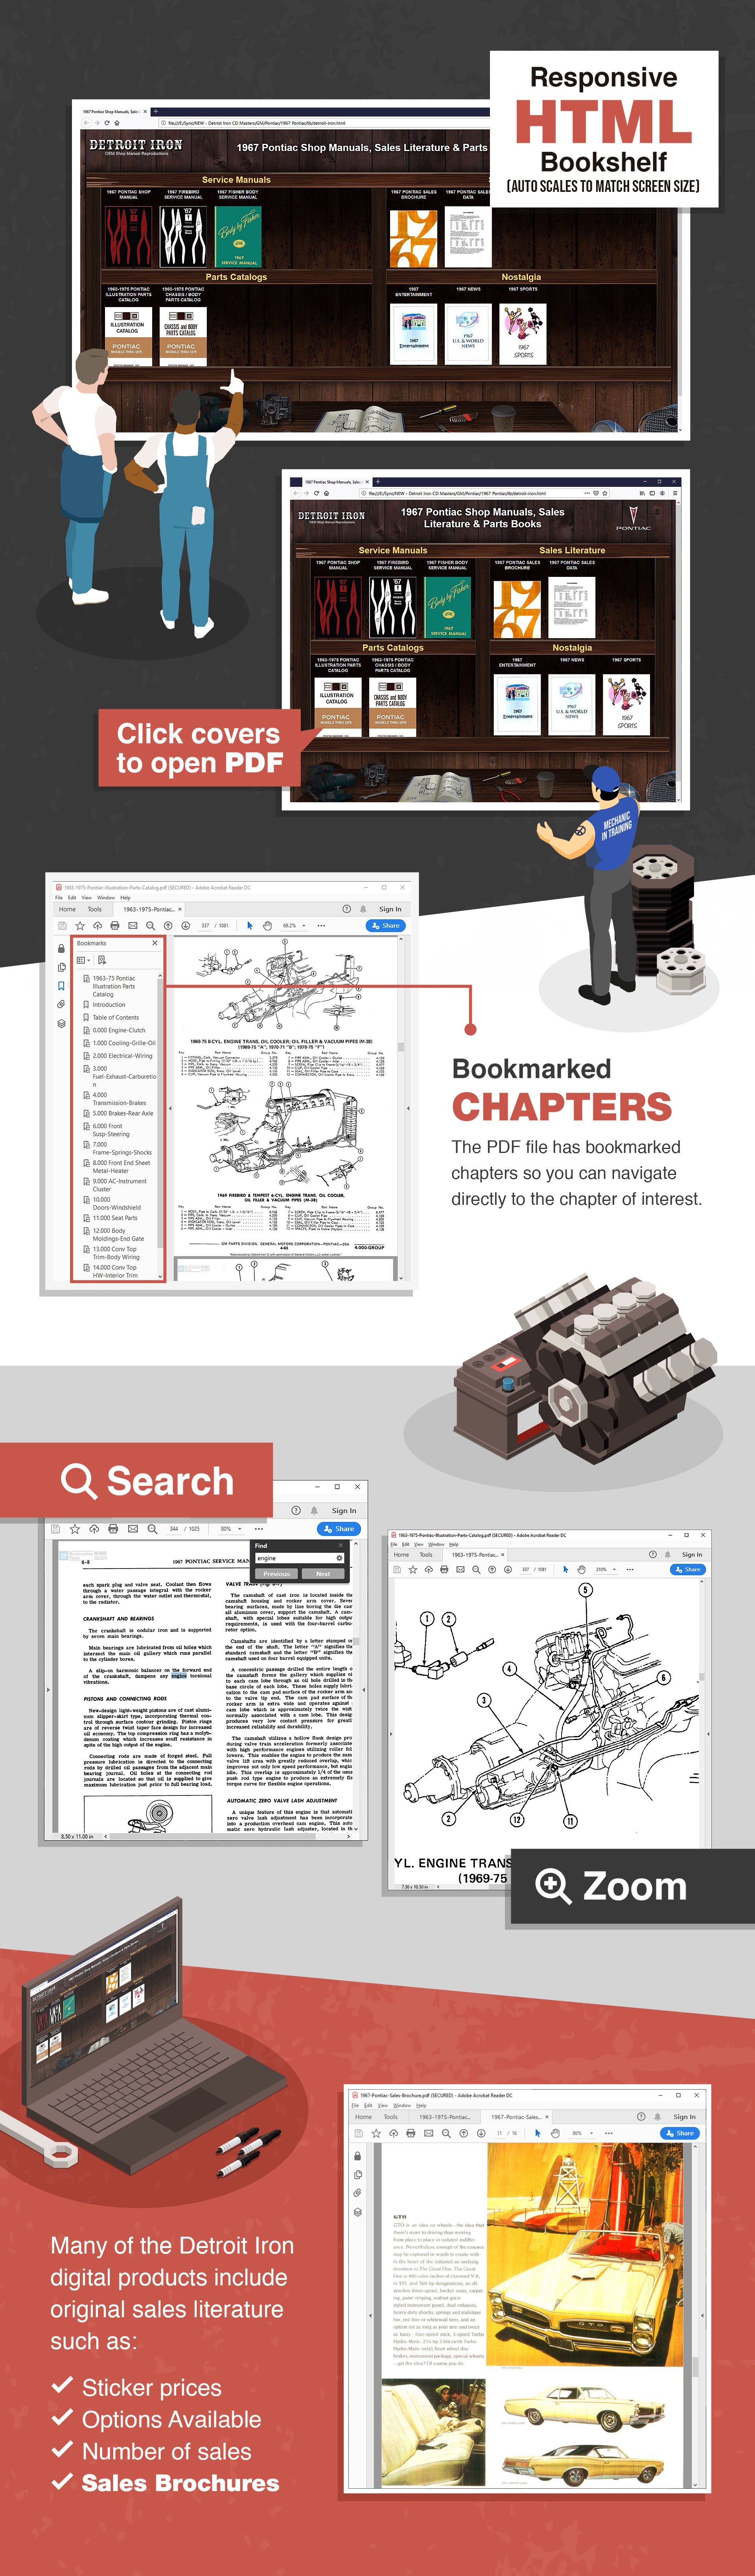 Detroit Iron Digital Product Feature Overview Infographic